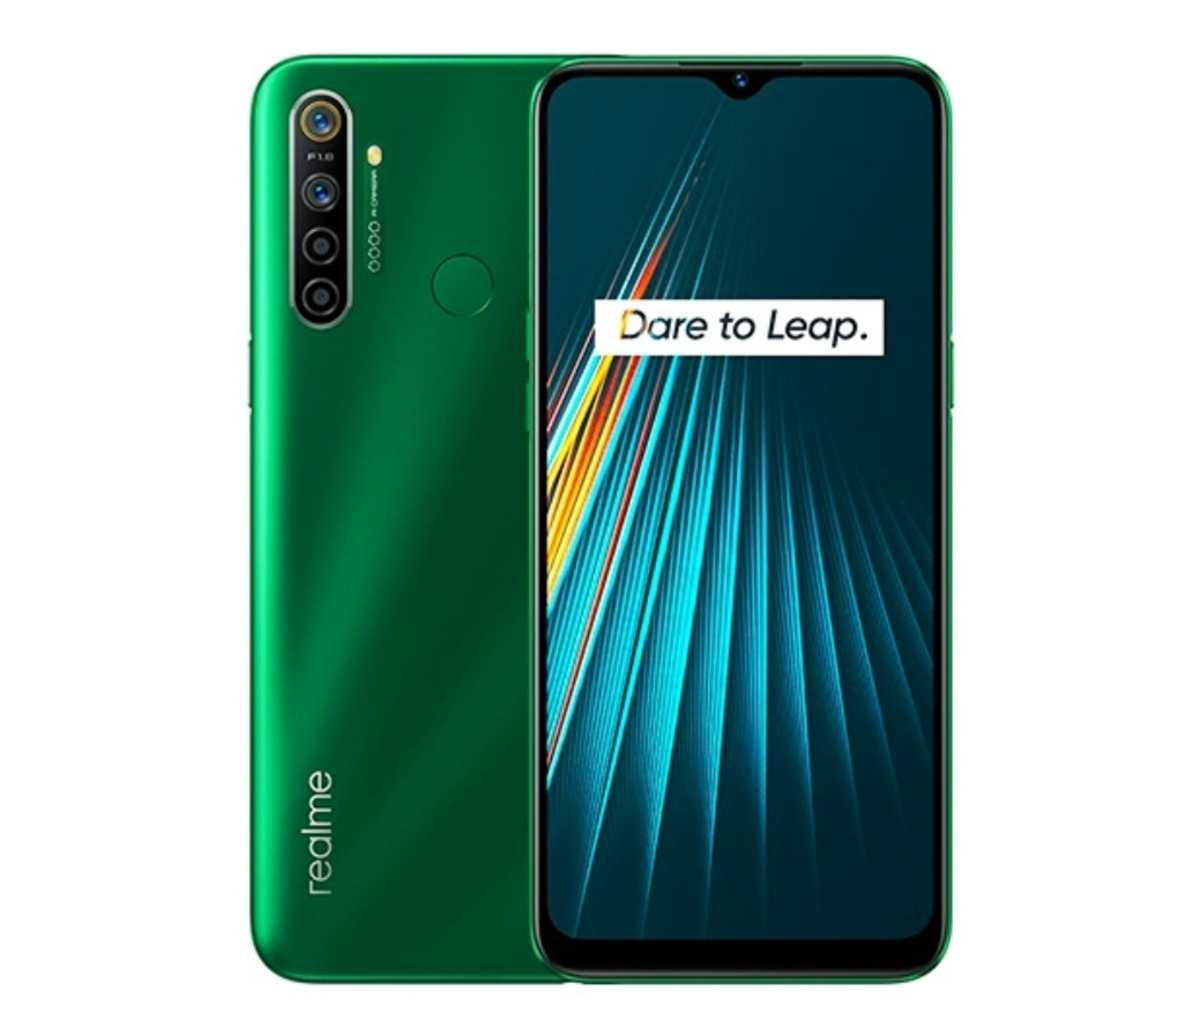 Realme 6i price in Nigeria, Realme 6i, Realme 6i specs and price in Nigeria, Realme 6i price, Realme 6i specs, price of Realme 6i in Nigeria, how much is Realme 6i in Nigeria, Realme 6i In Nigeria